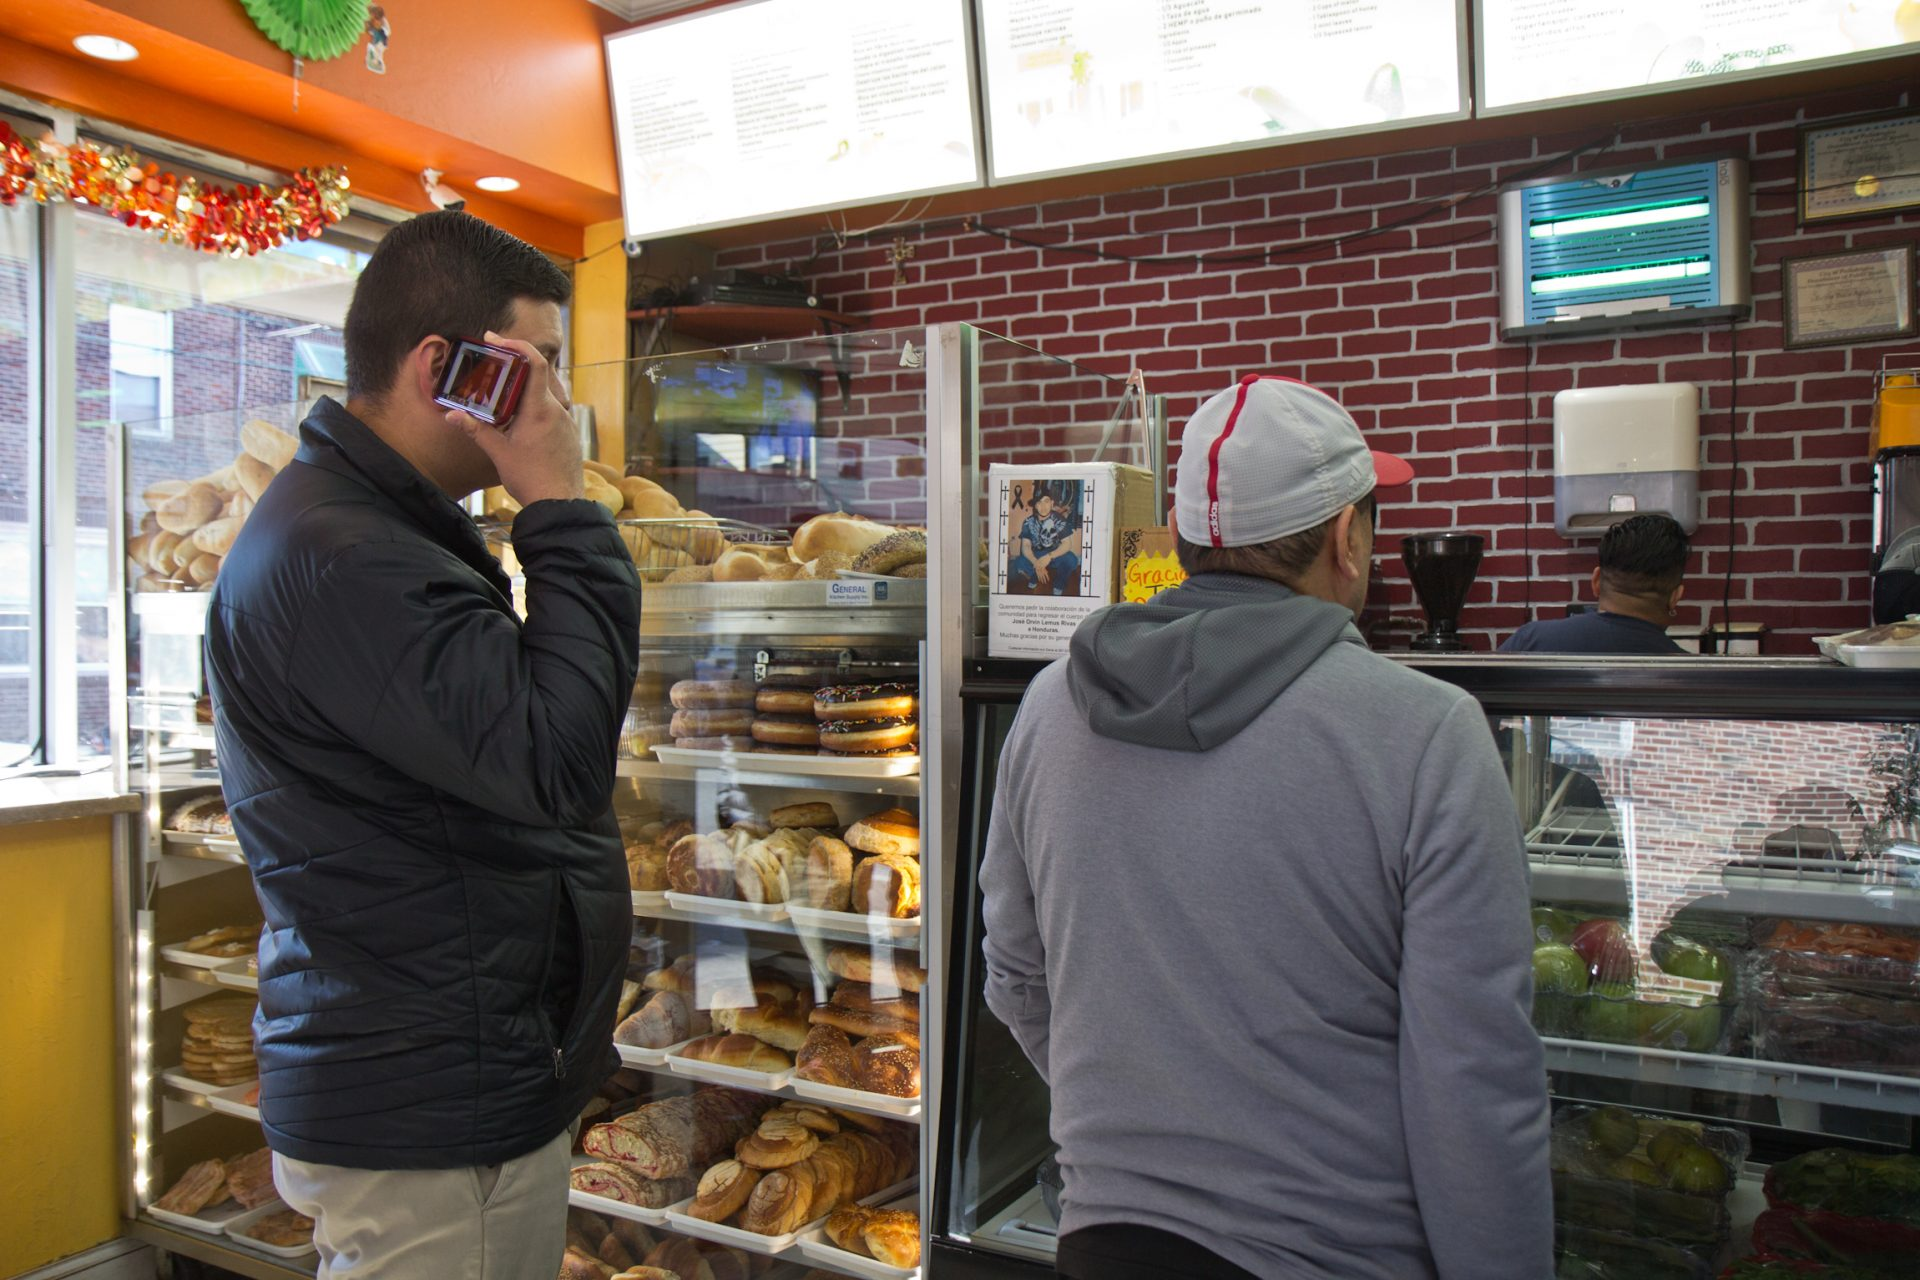 Customers stand in line in Rosa's bakery in South Philadelphia.